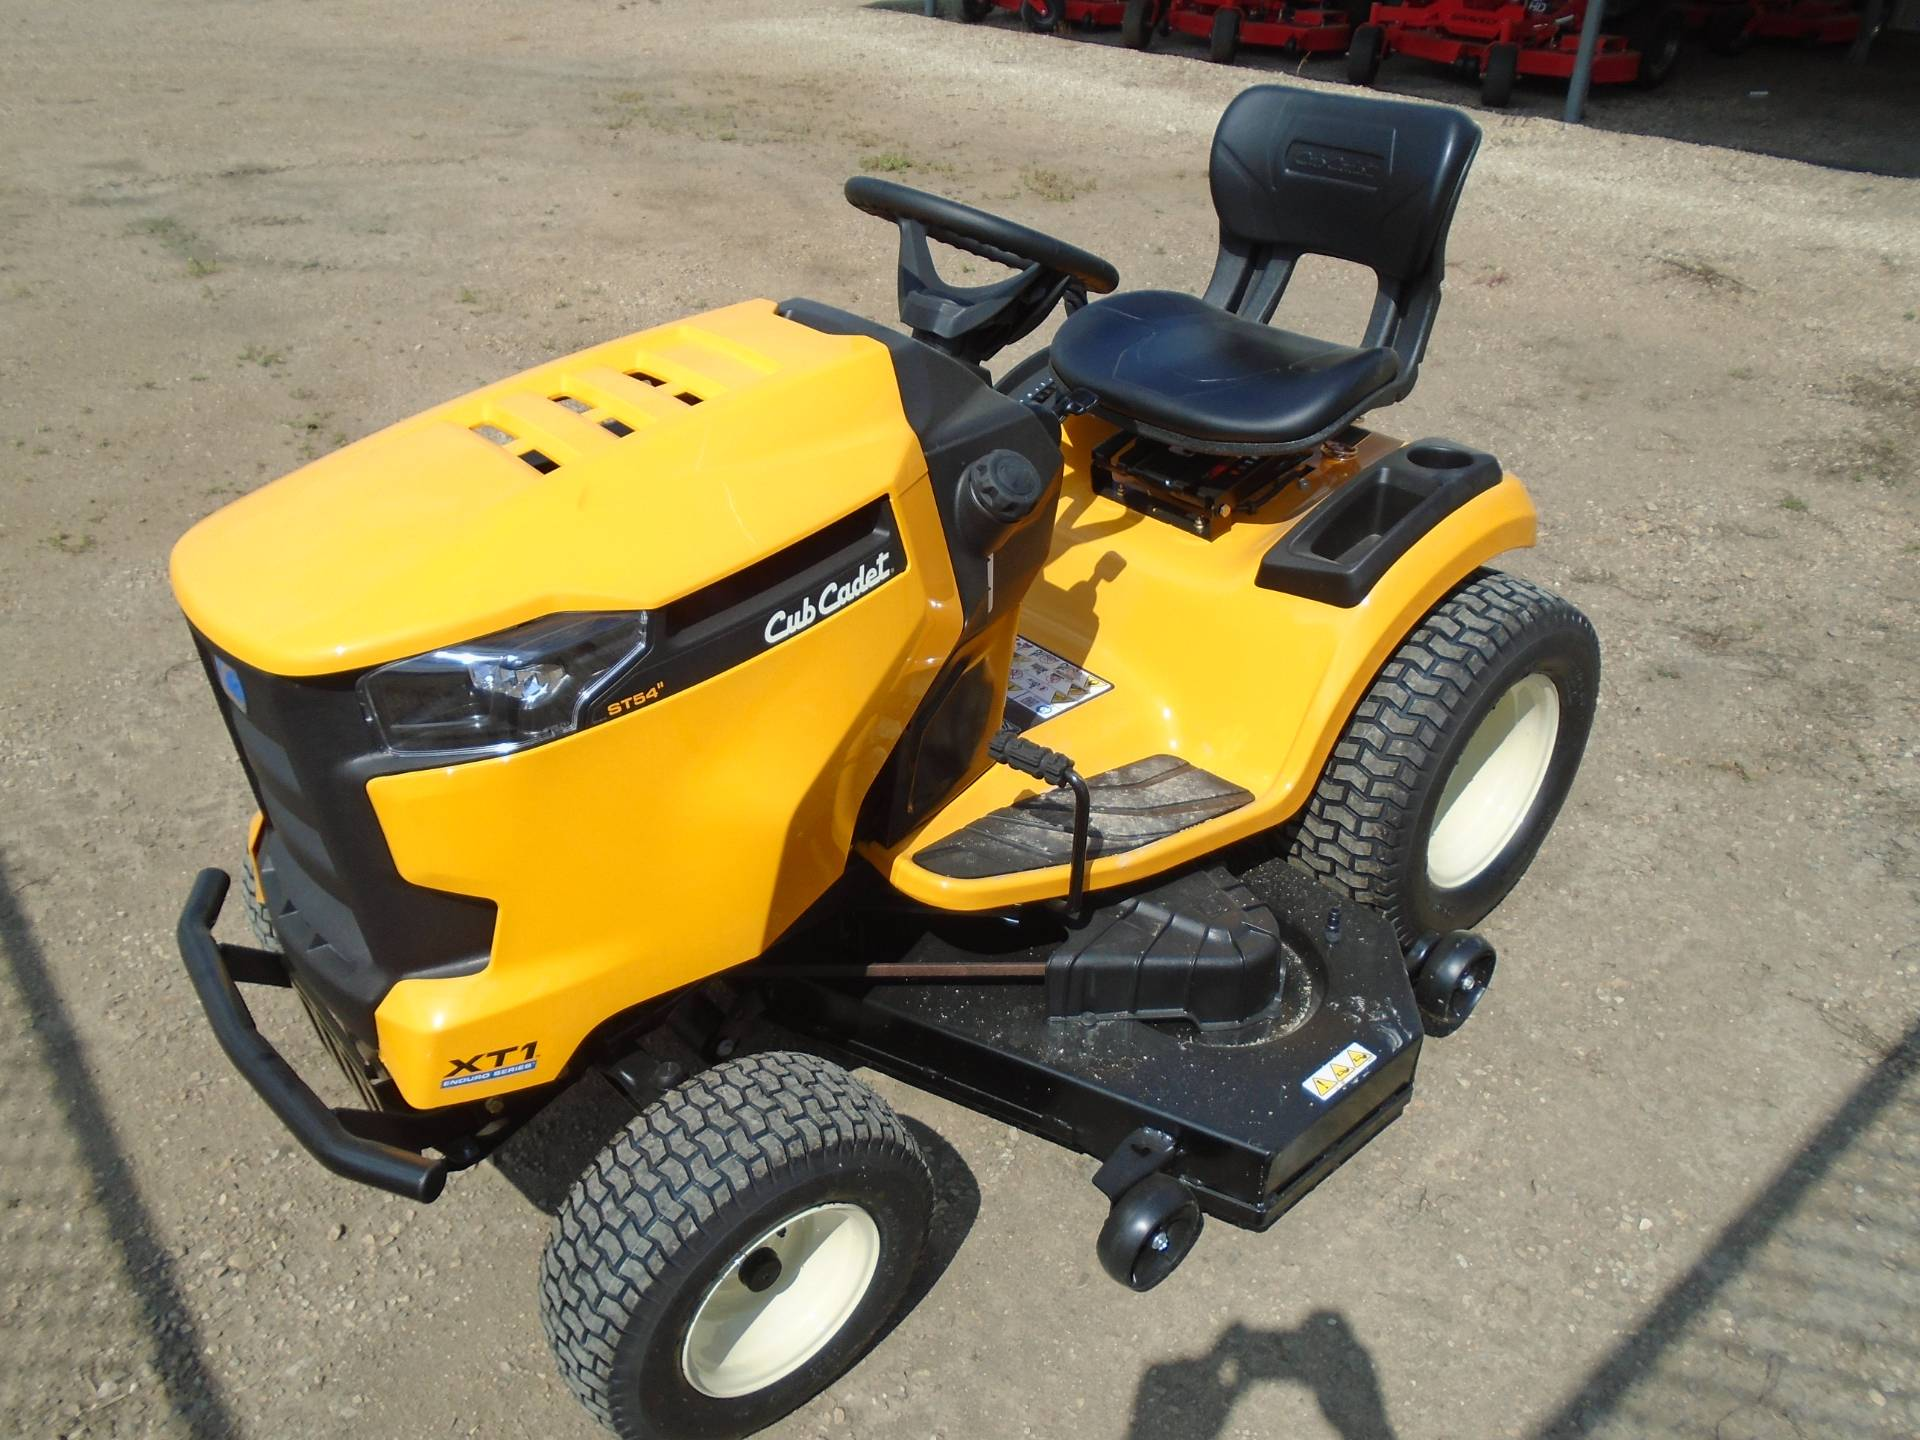 2020 Cub Cadet XT1 ST54 54 in. Kohler 7000 Series 24 hp in Lake Mills, Iowa - Photo 1